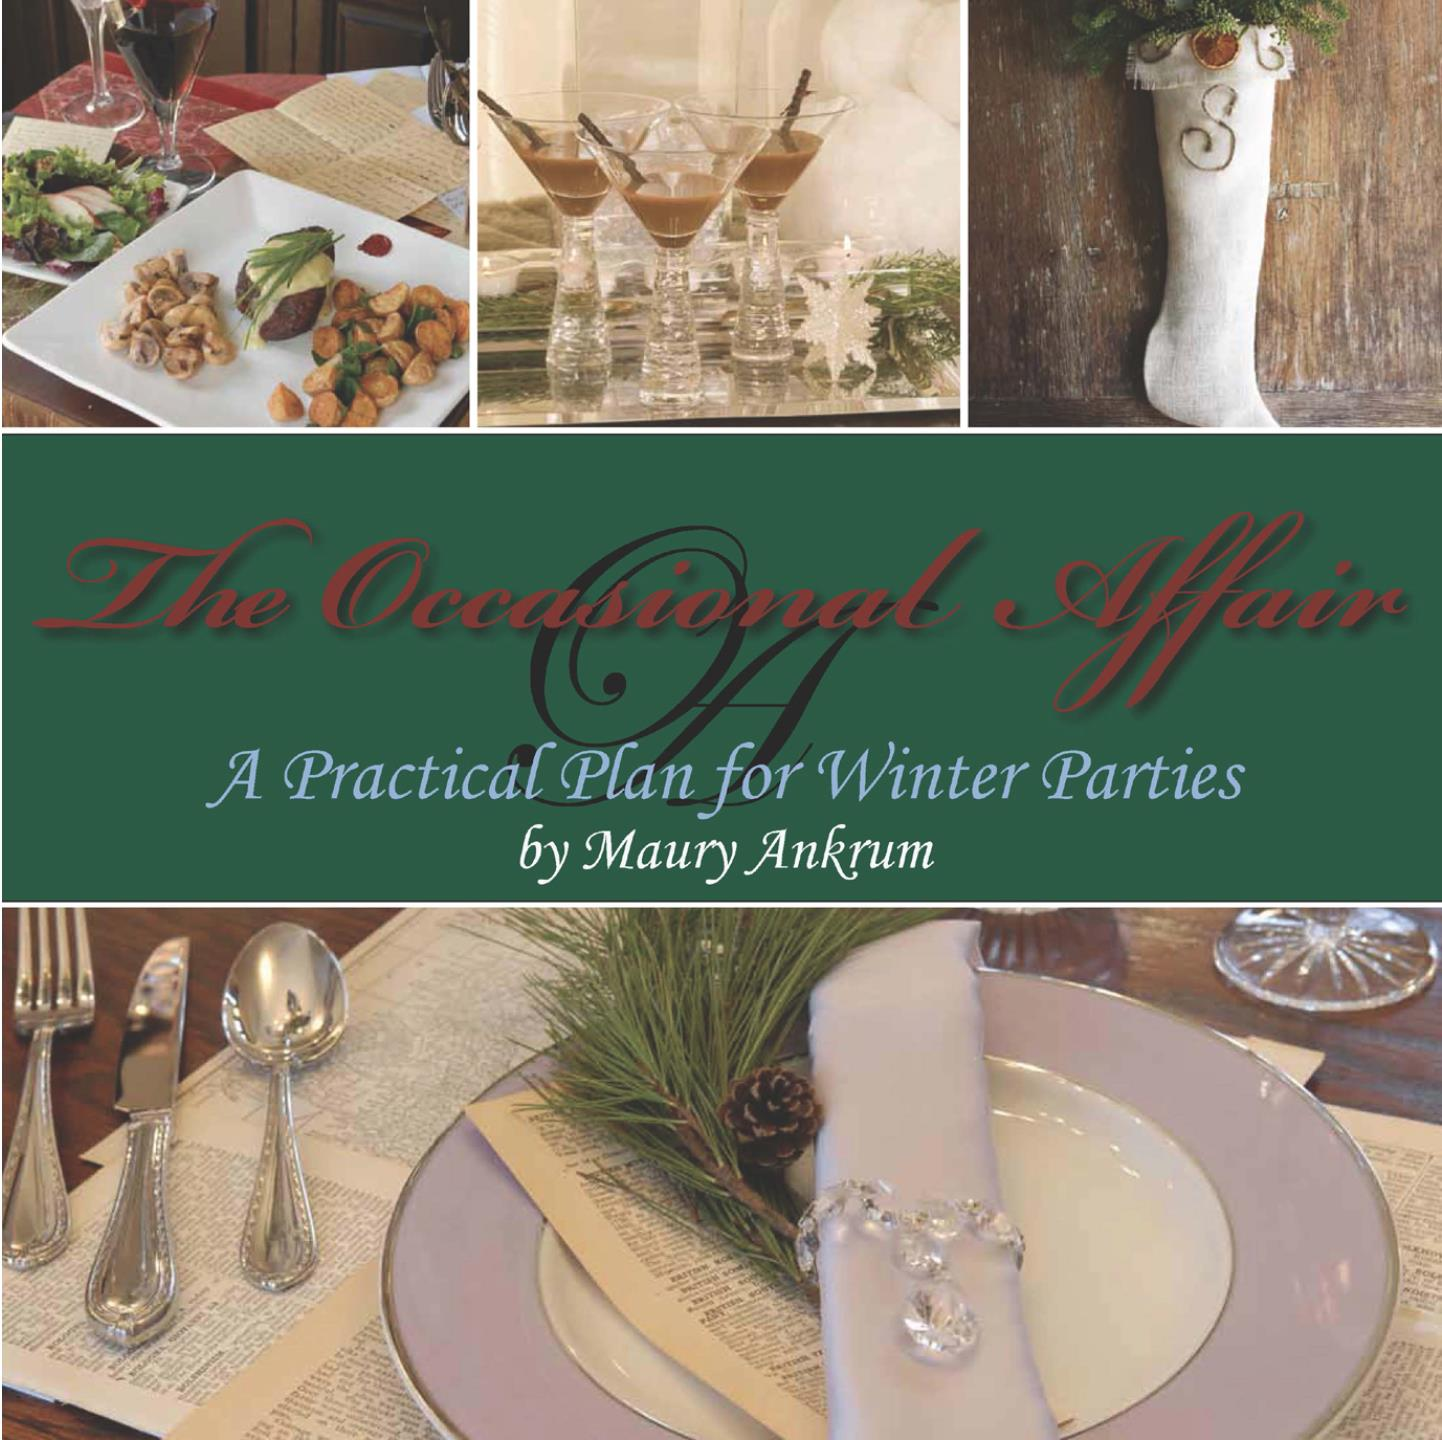 The Occasional Affair: A Practical Plan for Winter Parties